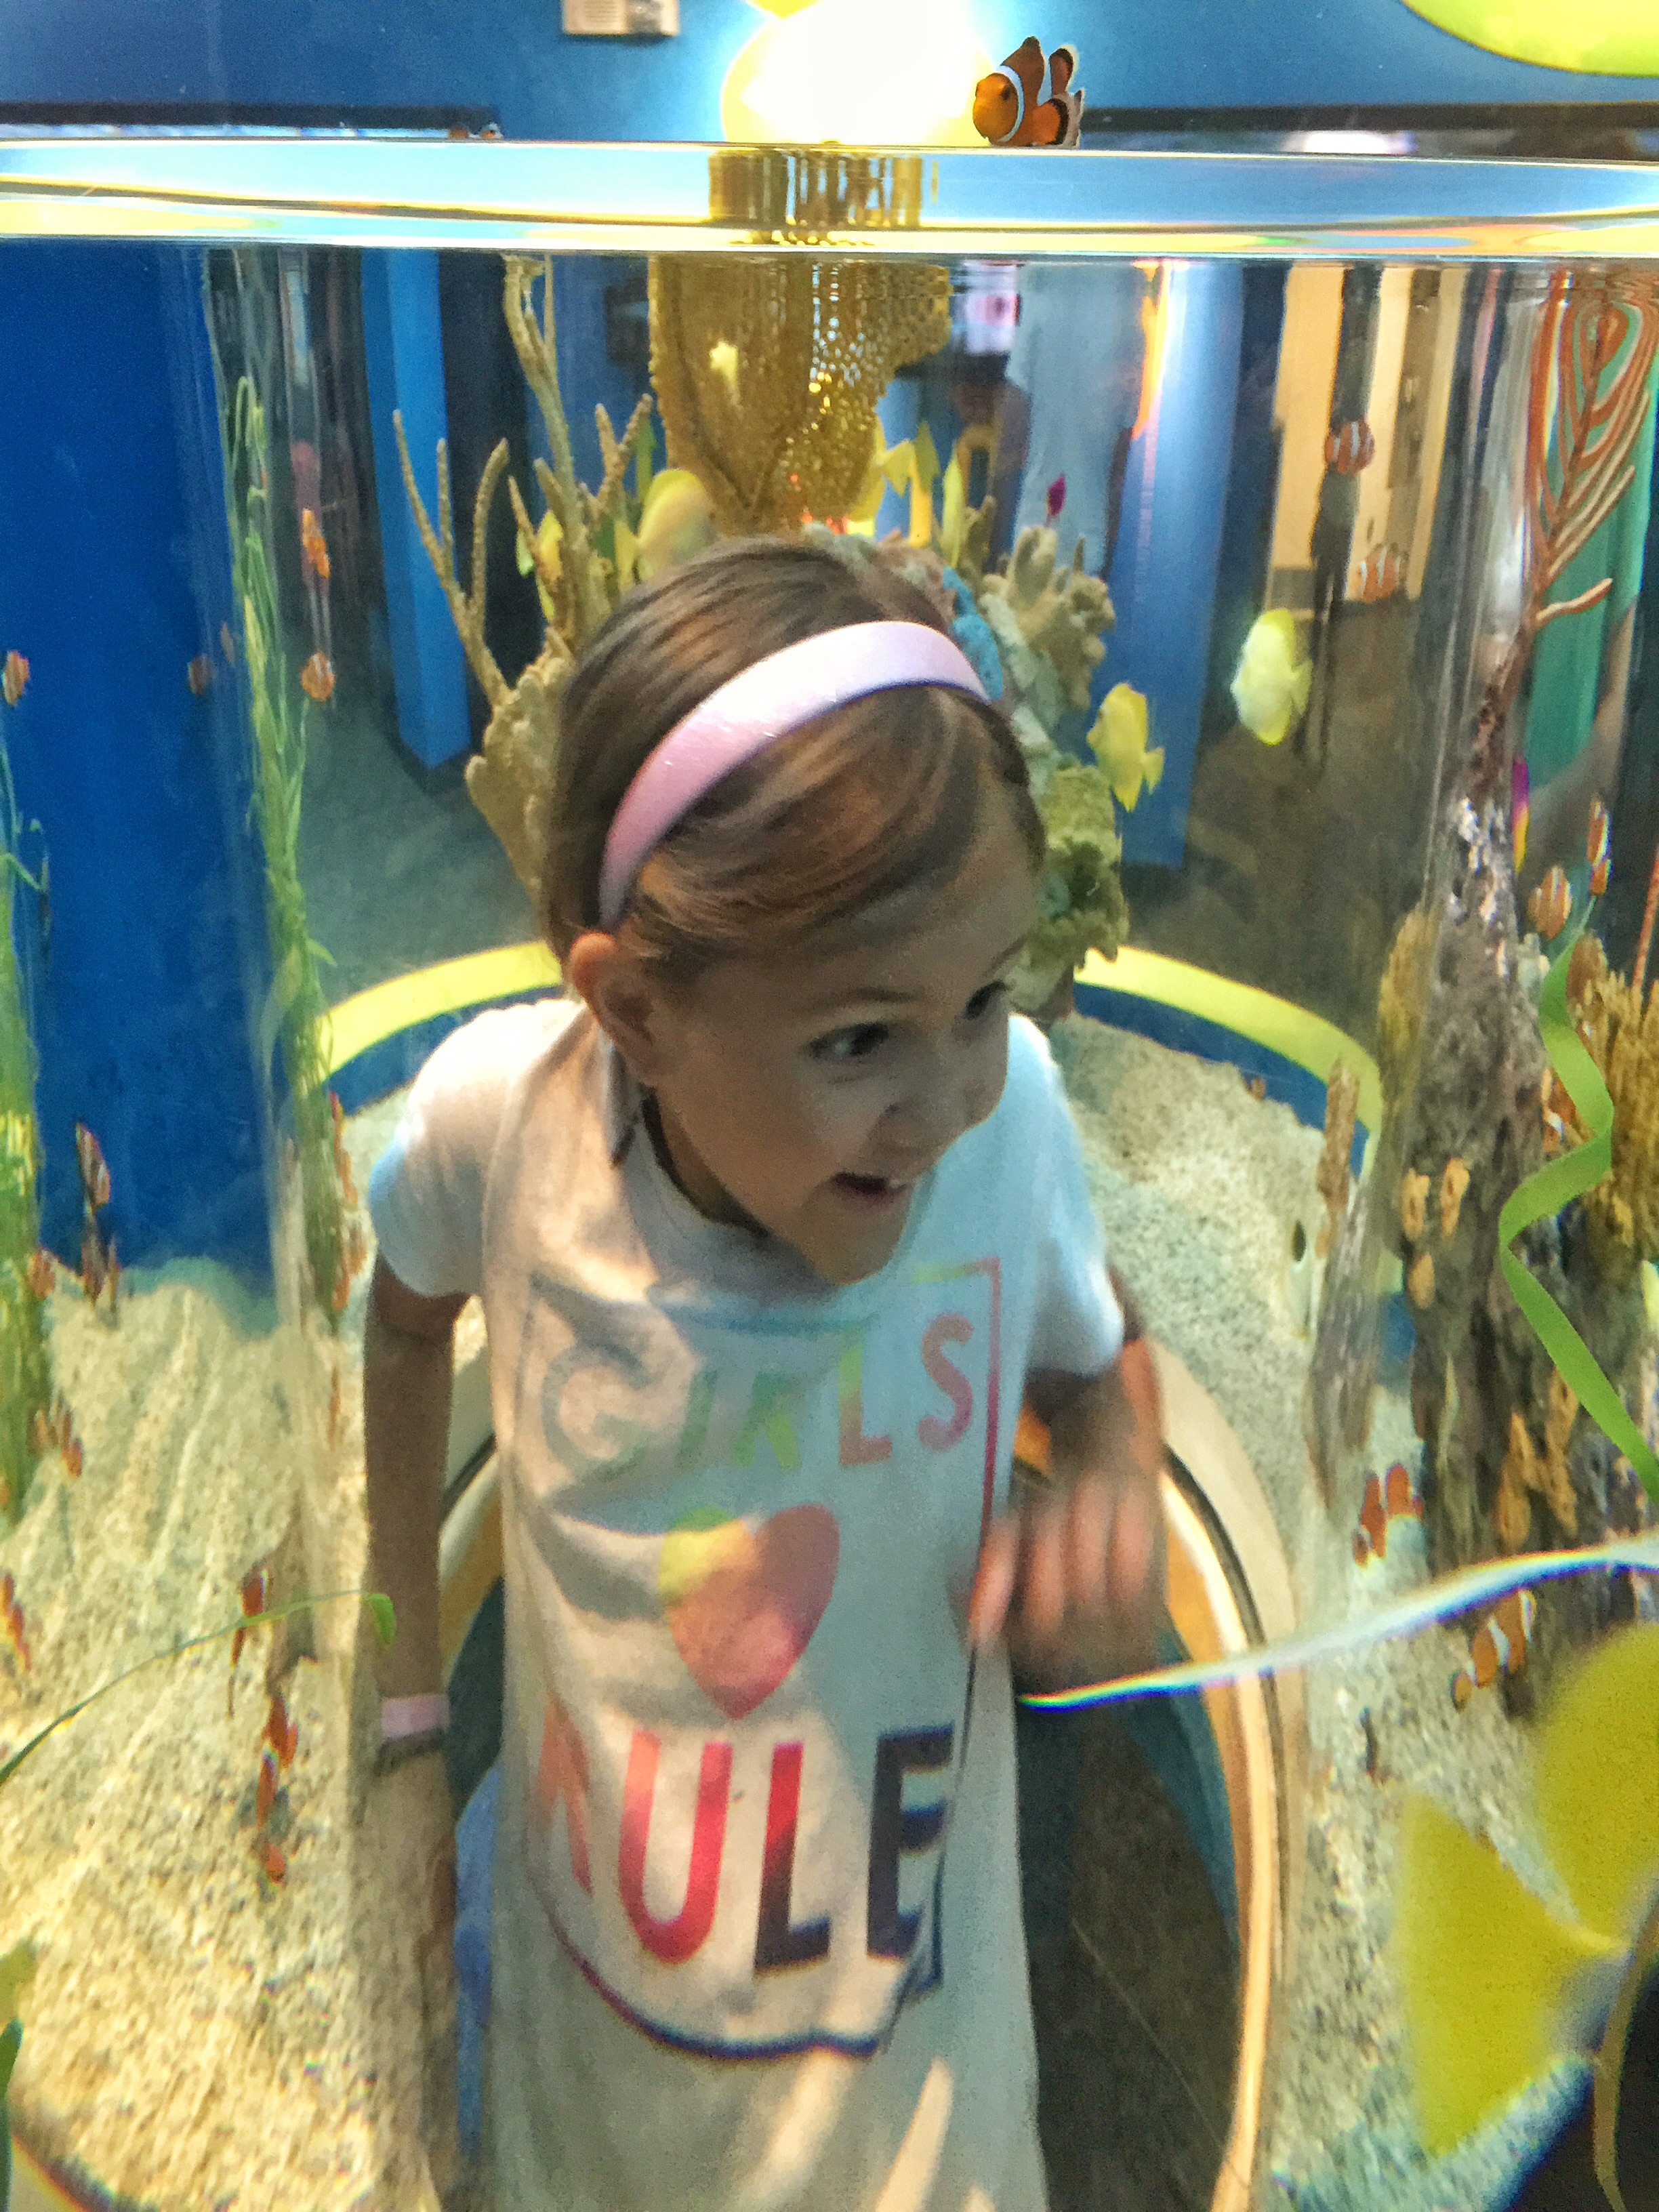 Crawl in the tank and see the fish up close!